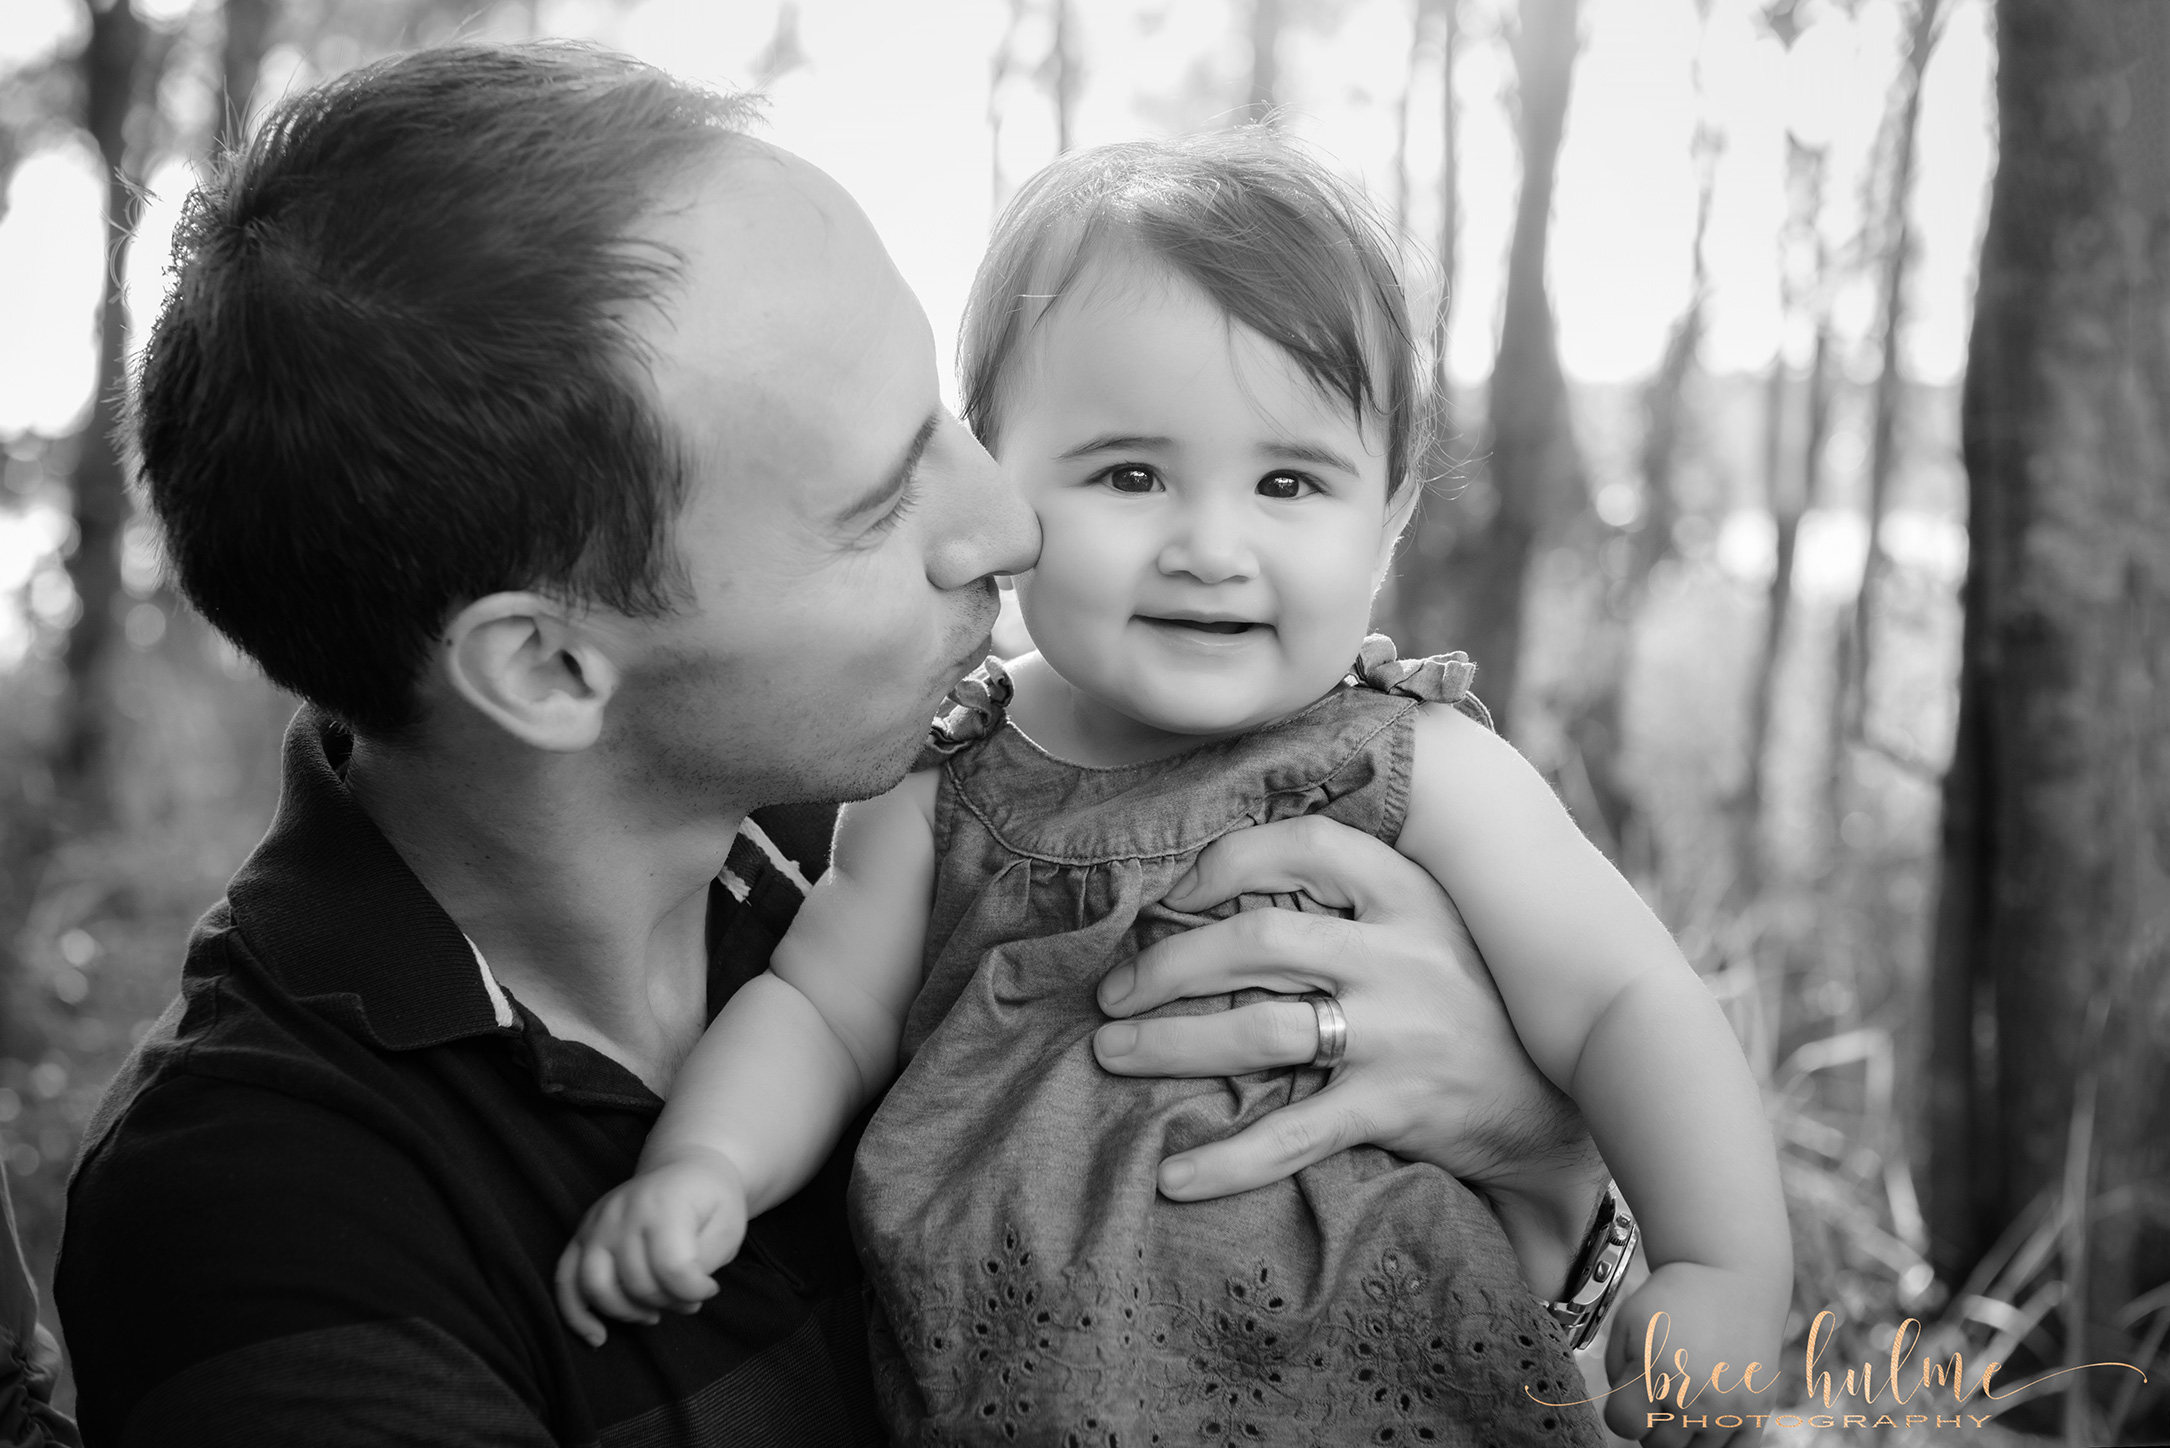 Beautiful family portraits by Sydney's best family and newborn photographer Bree Hulme Photography Happy Father's Day